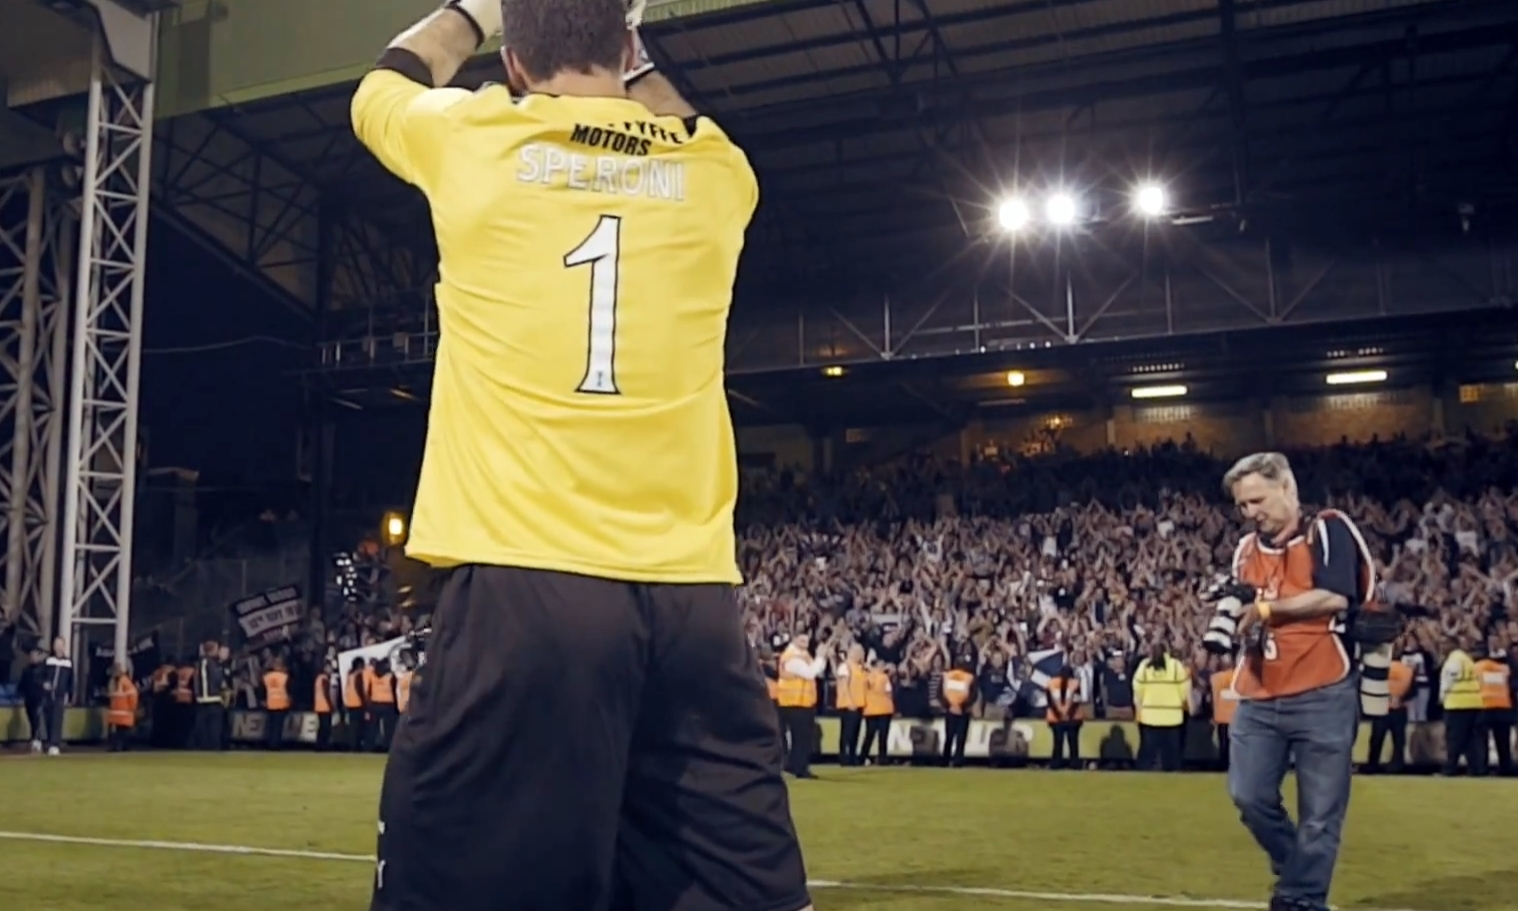 Julian Speroni hails the Dundee fans at his testimonial.